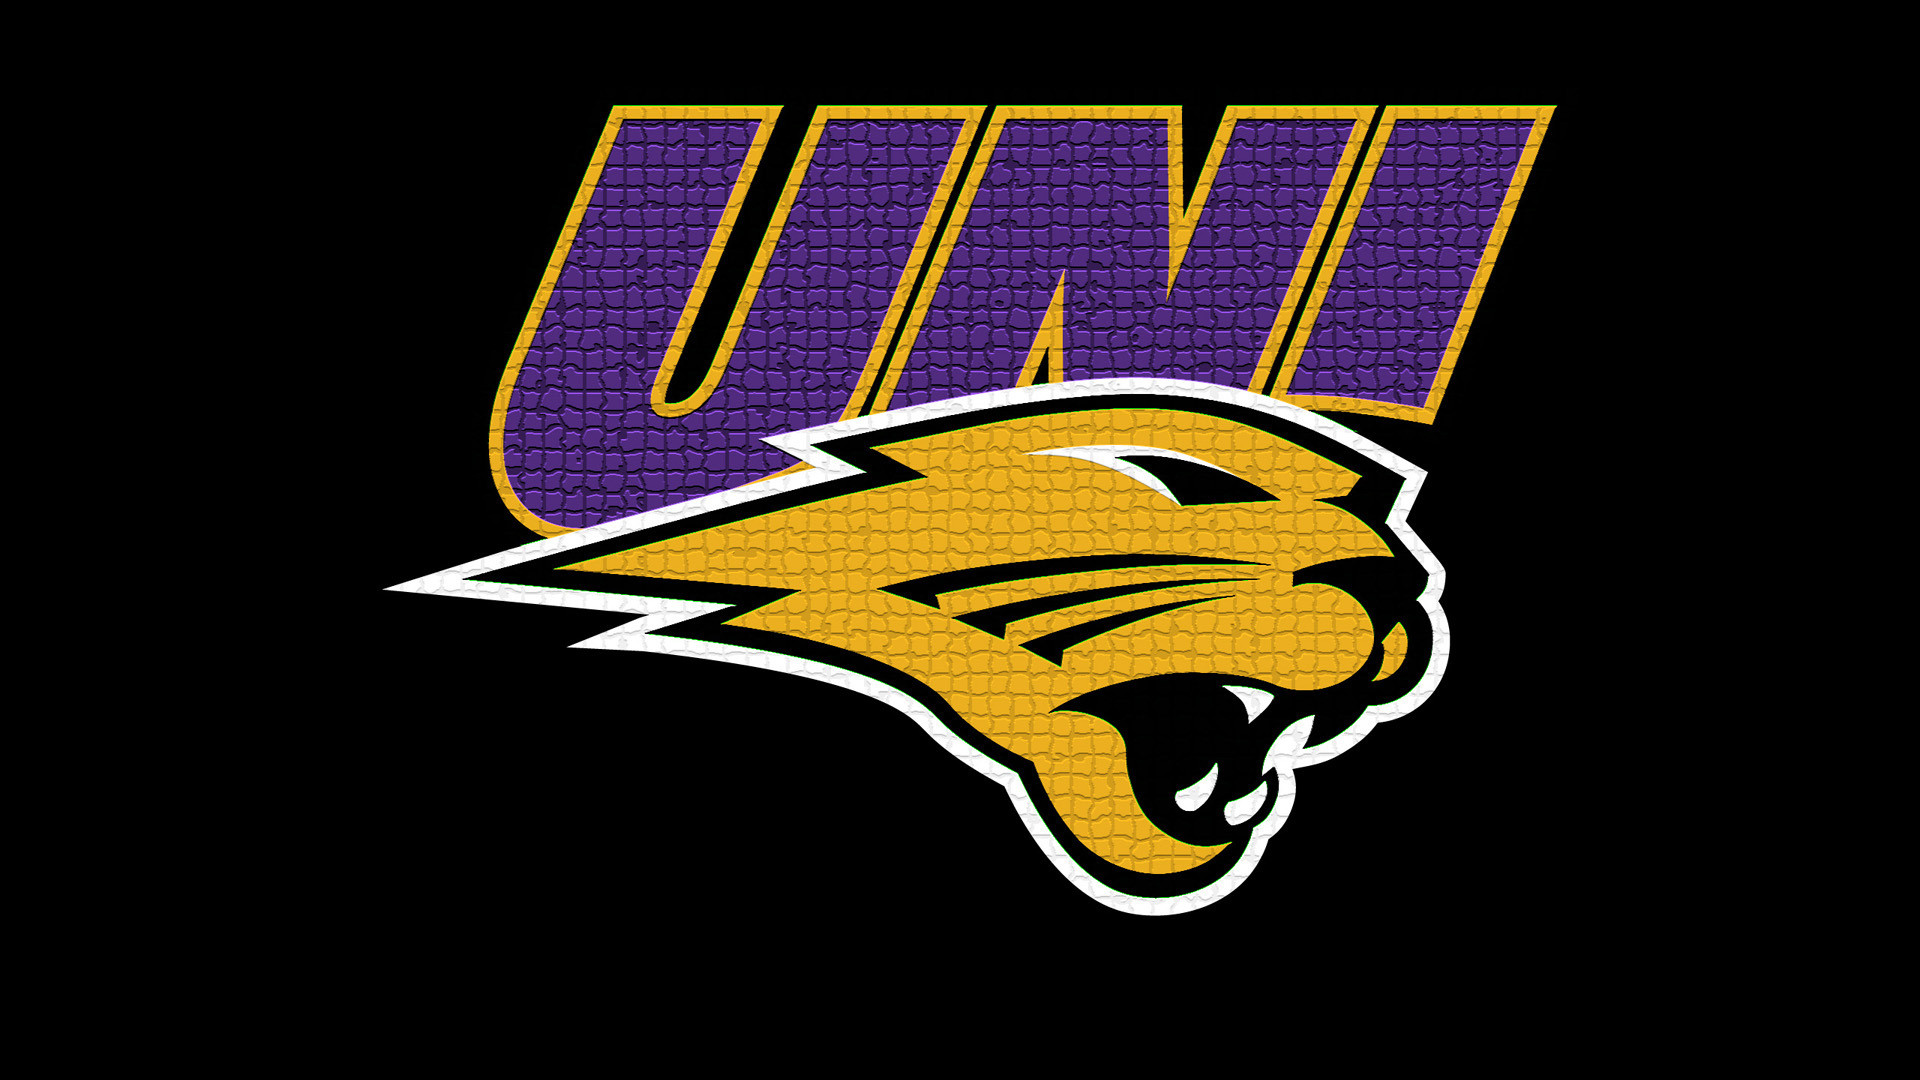 1920x1080 University Of Northern Iowa Panthers wallpaper - 417275